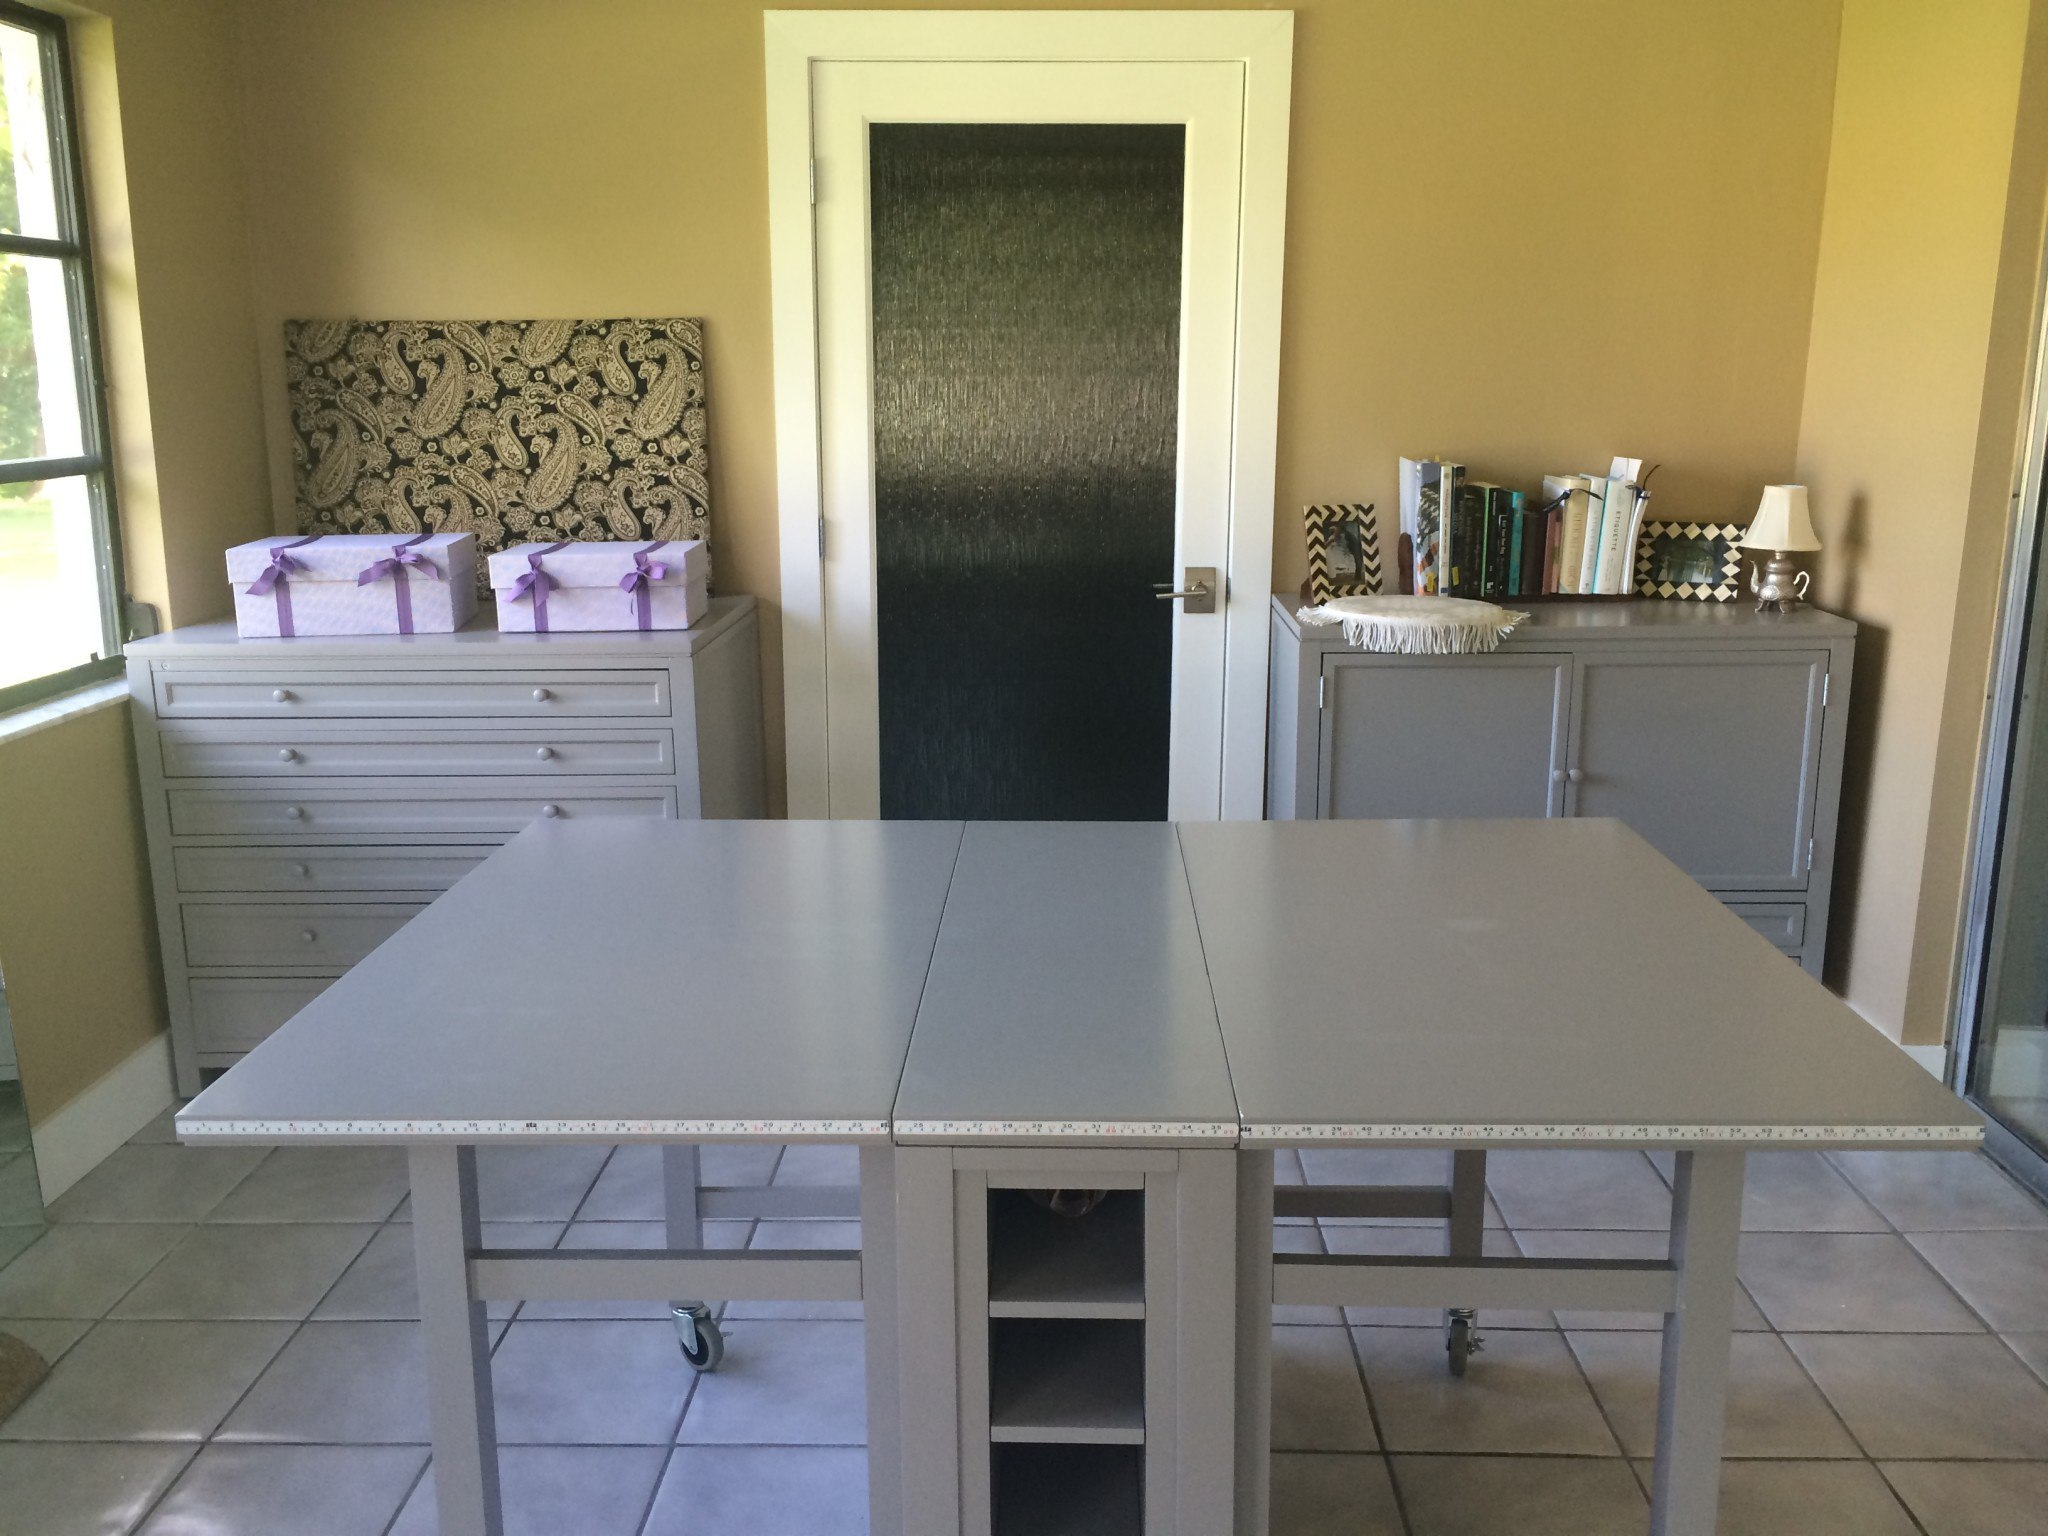 Home Craft Room: A Host Of Things